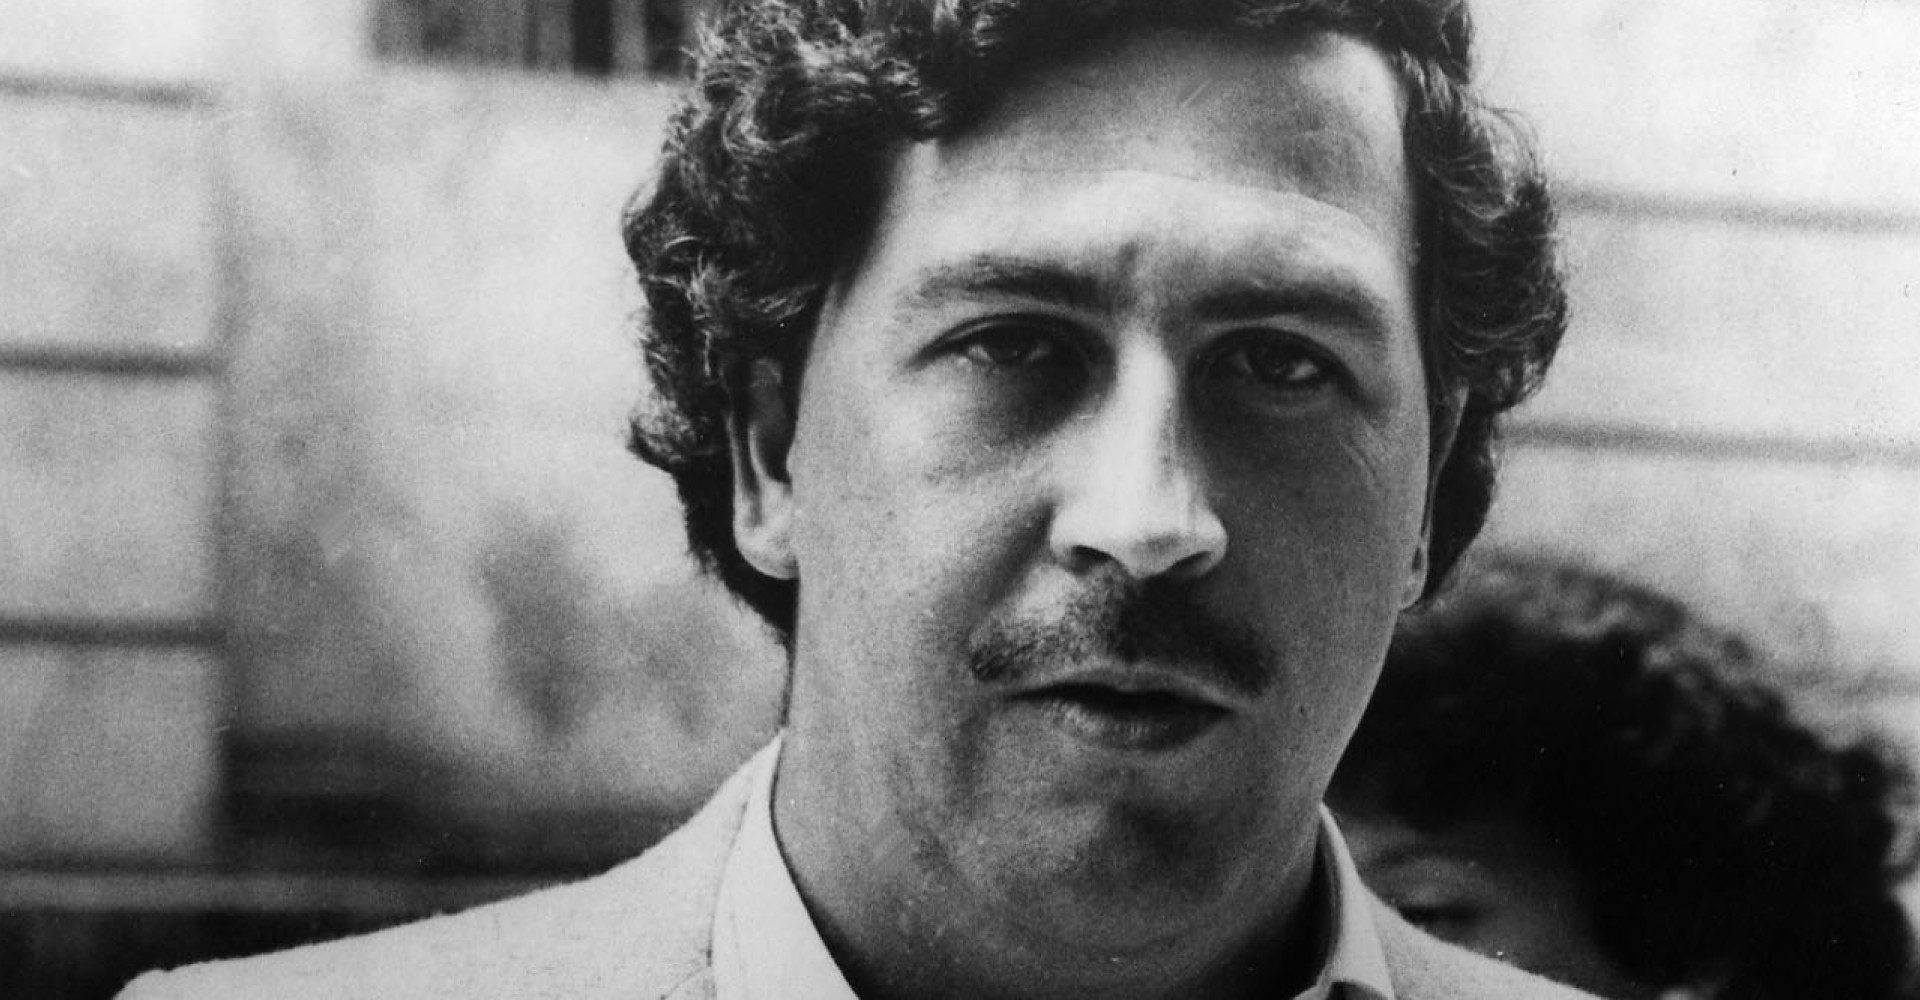 Pablo Escobar Escape Room